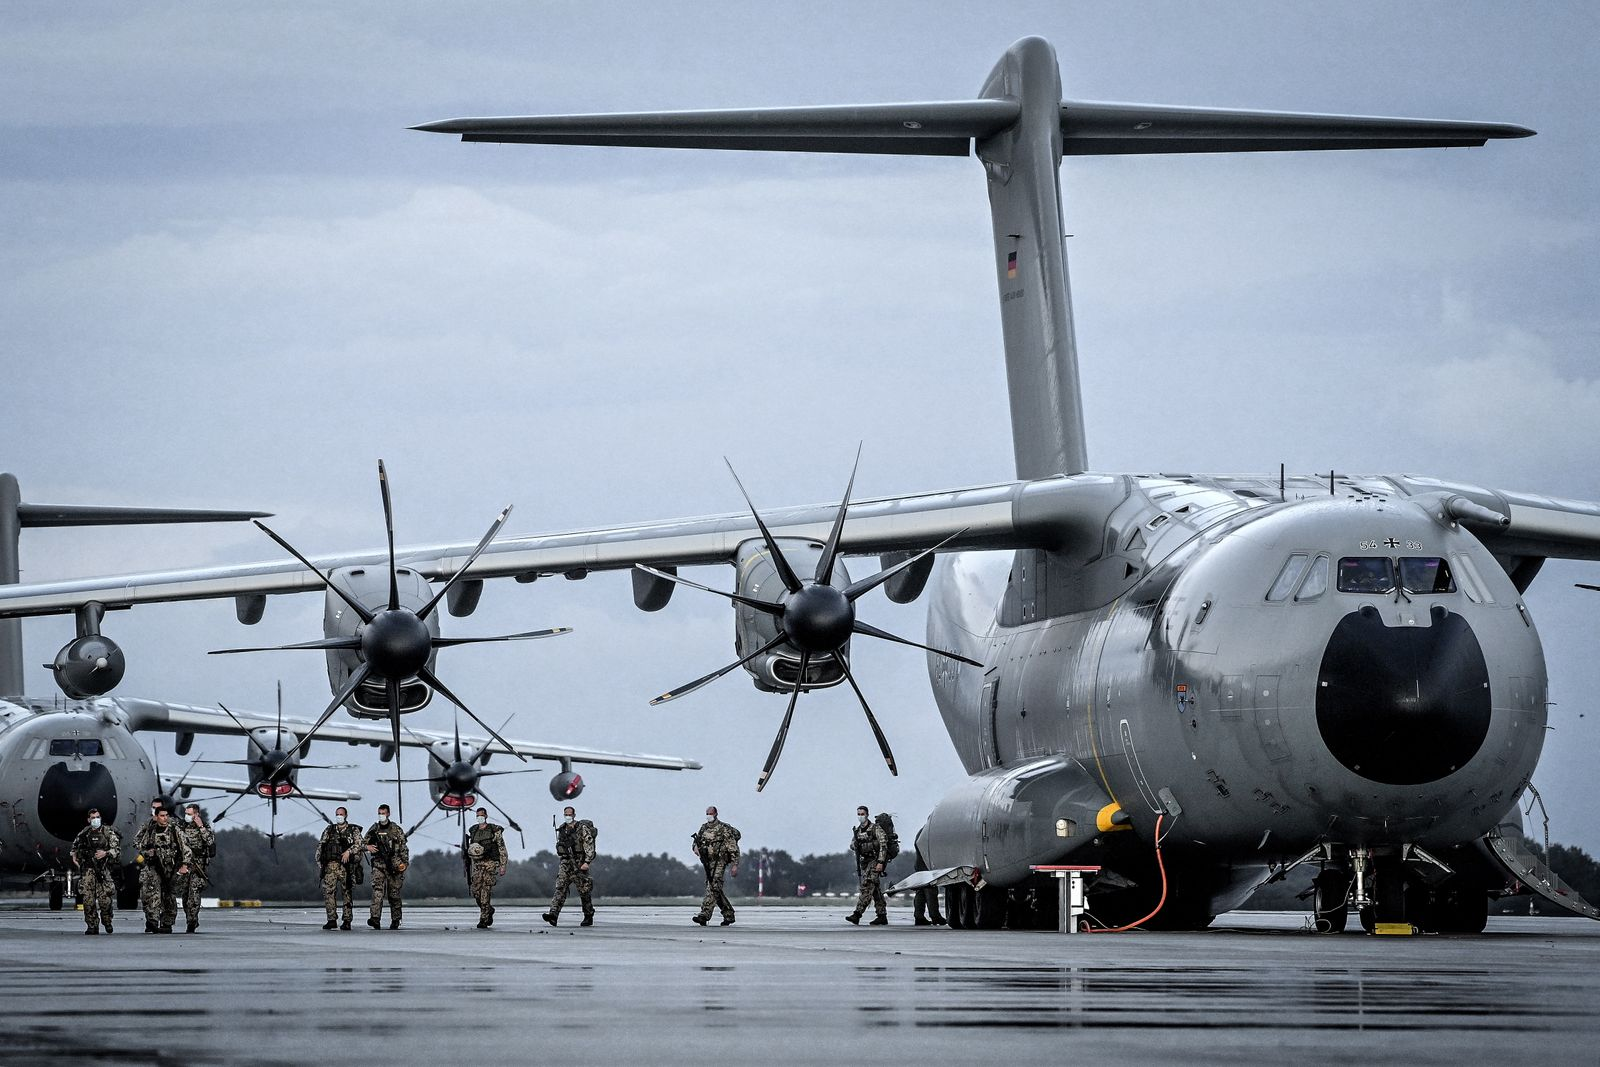 Last Bundeswehr aircrafts from Tashkent with 600 army soldiers arrive in Wunstorf